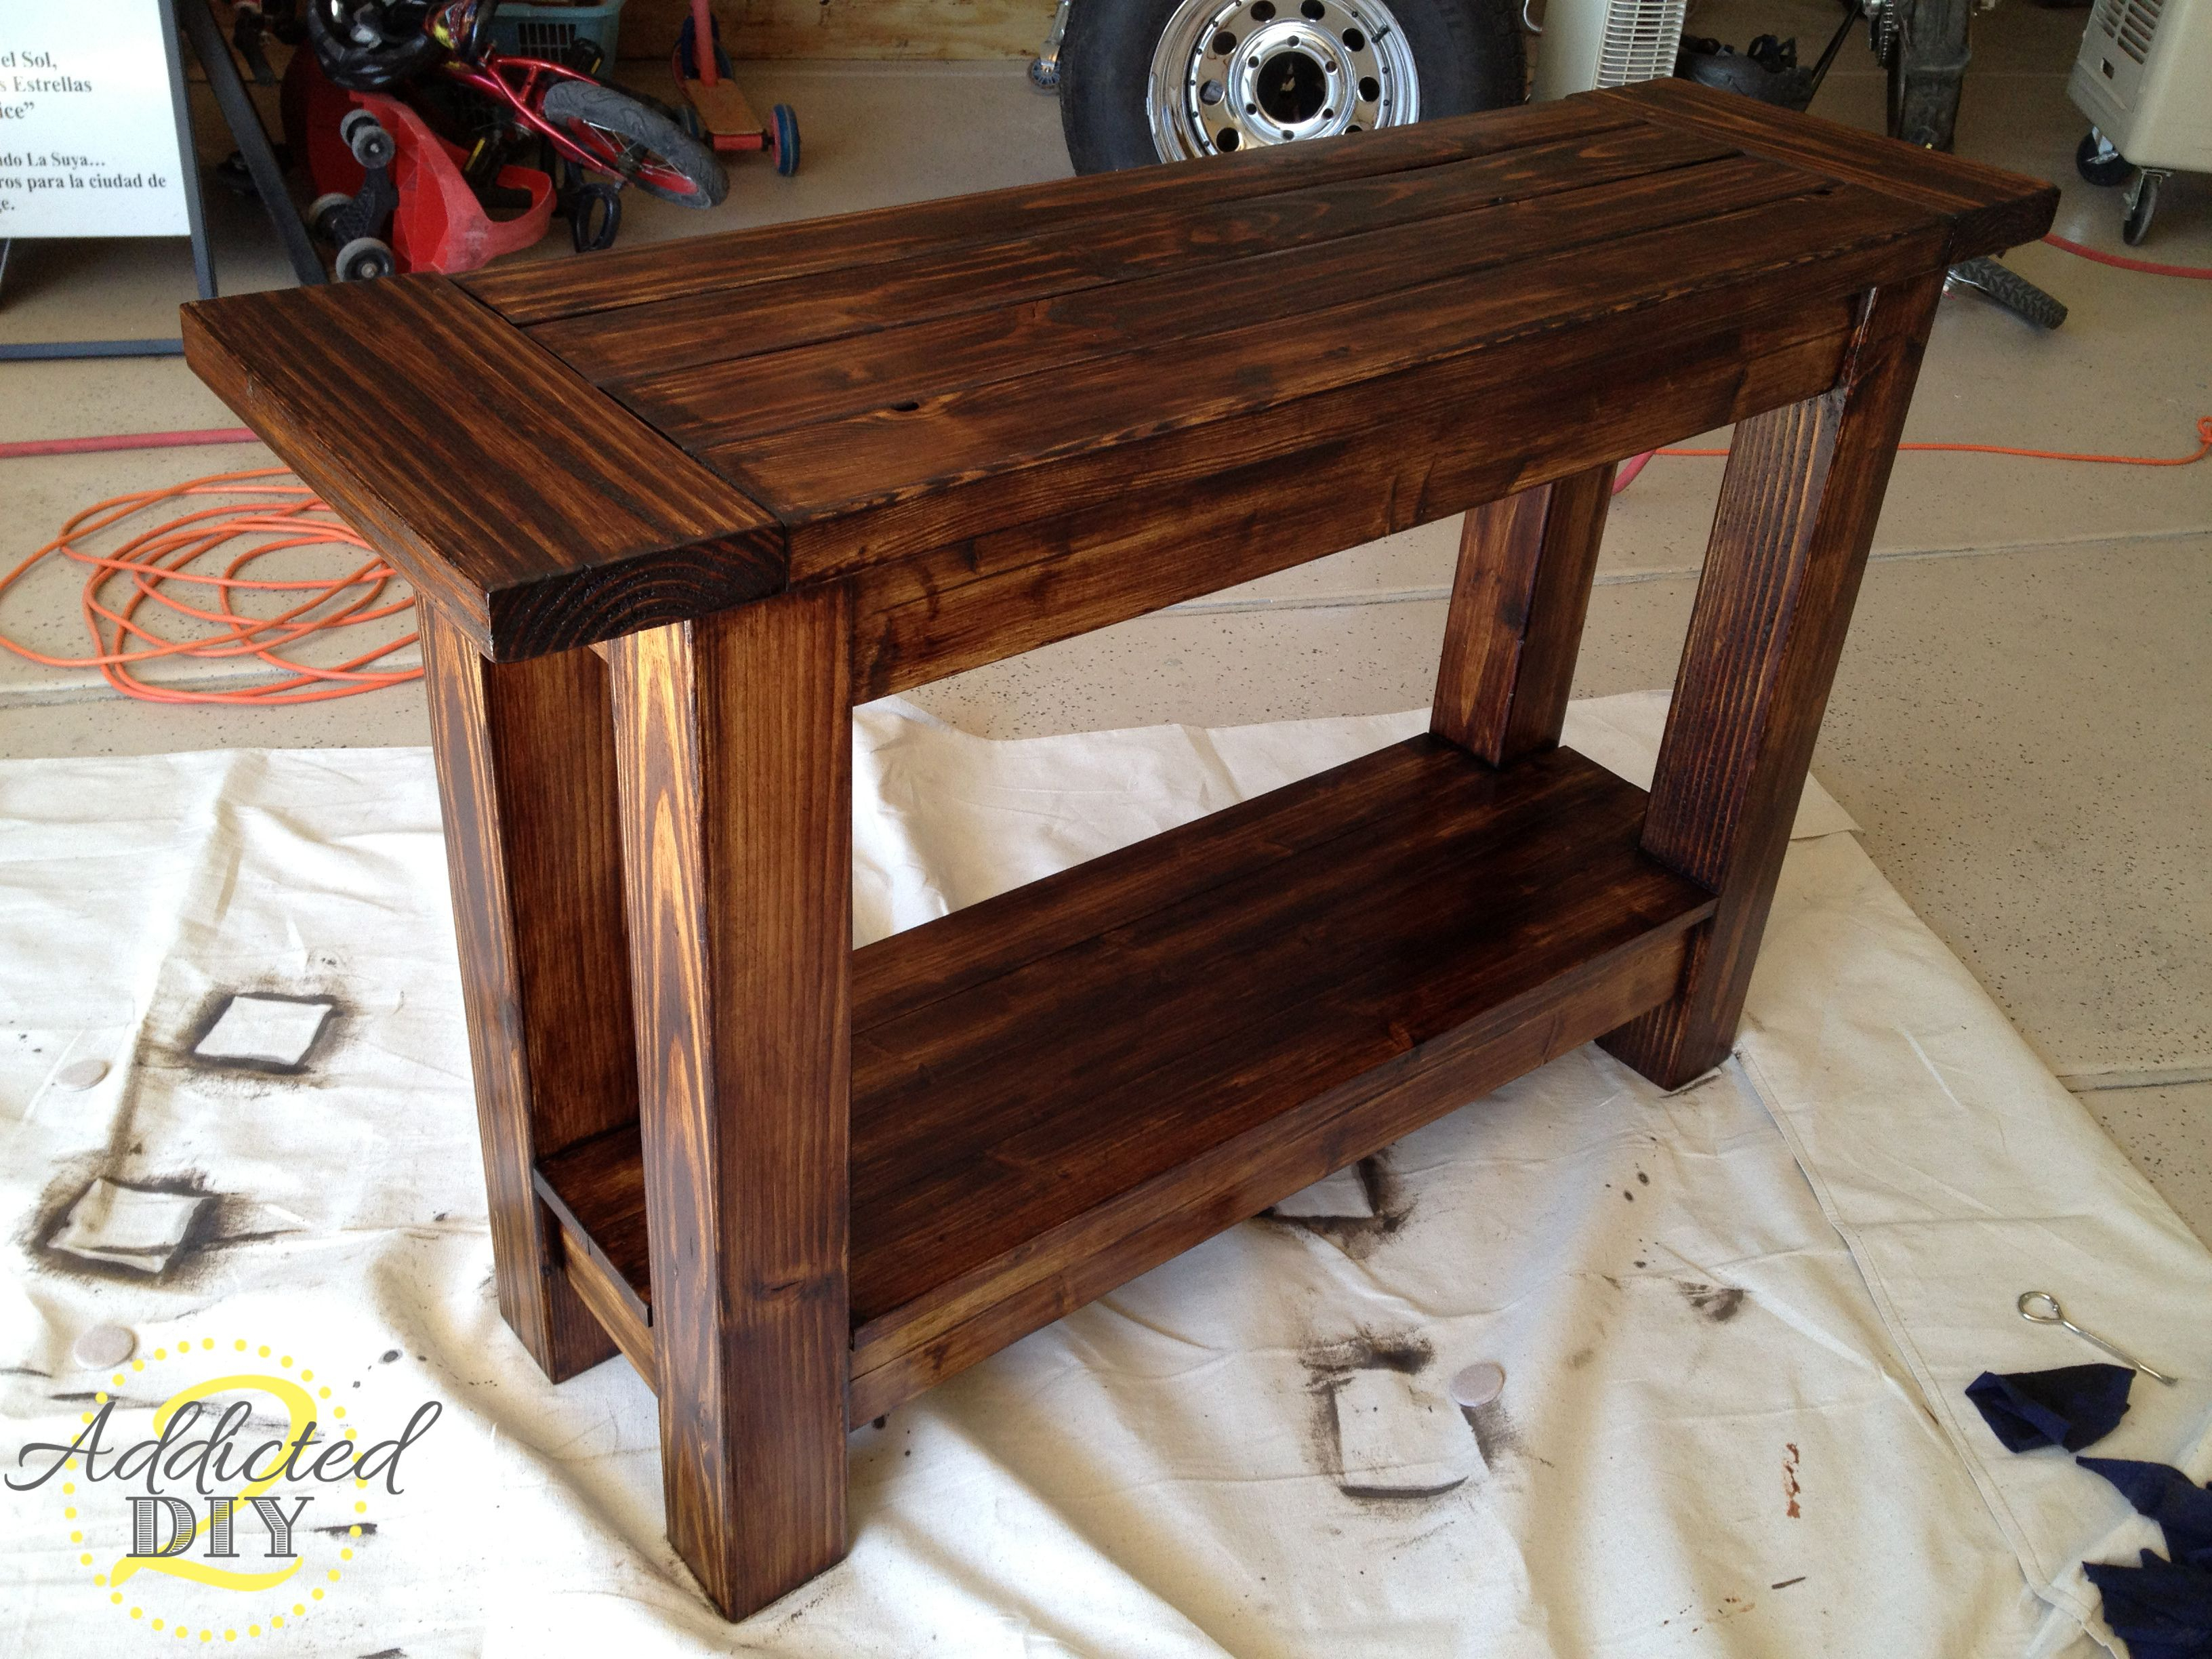 Pottery Barn Inspired Console Table | Diy Home Decor Idea intended for Walters Media Console Tables (Image 17 of 30)